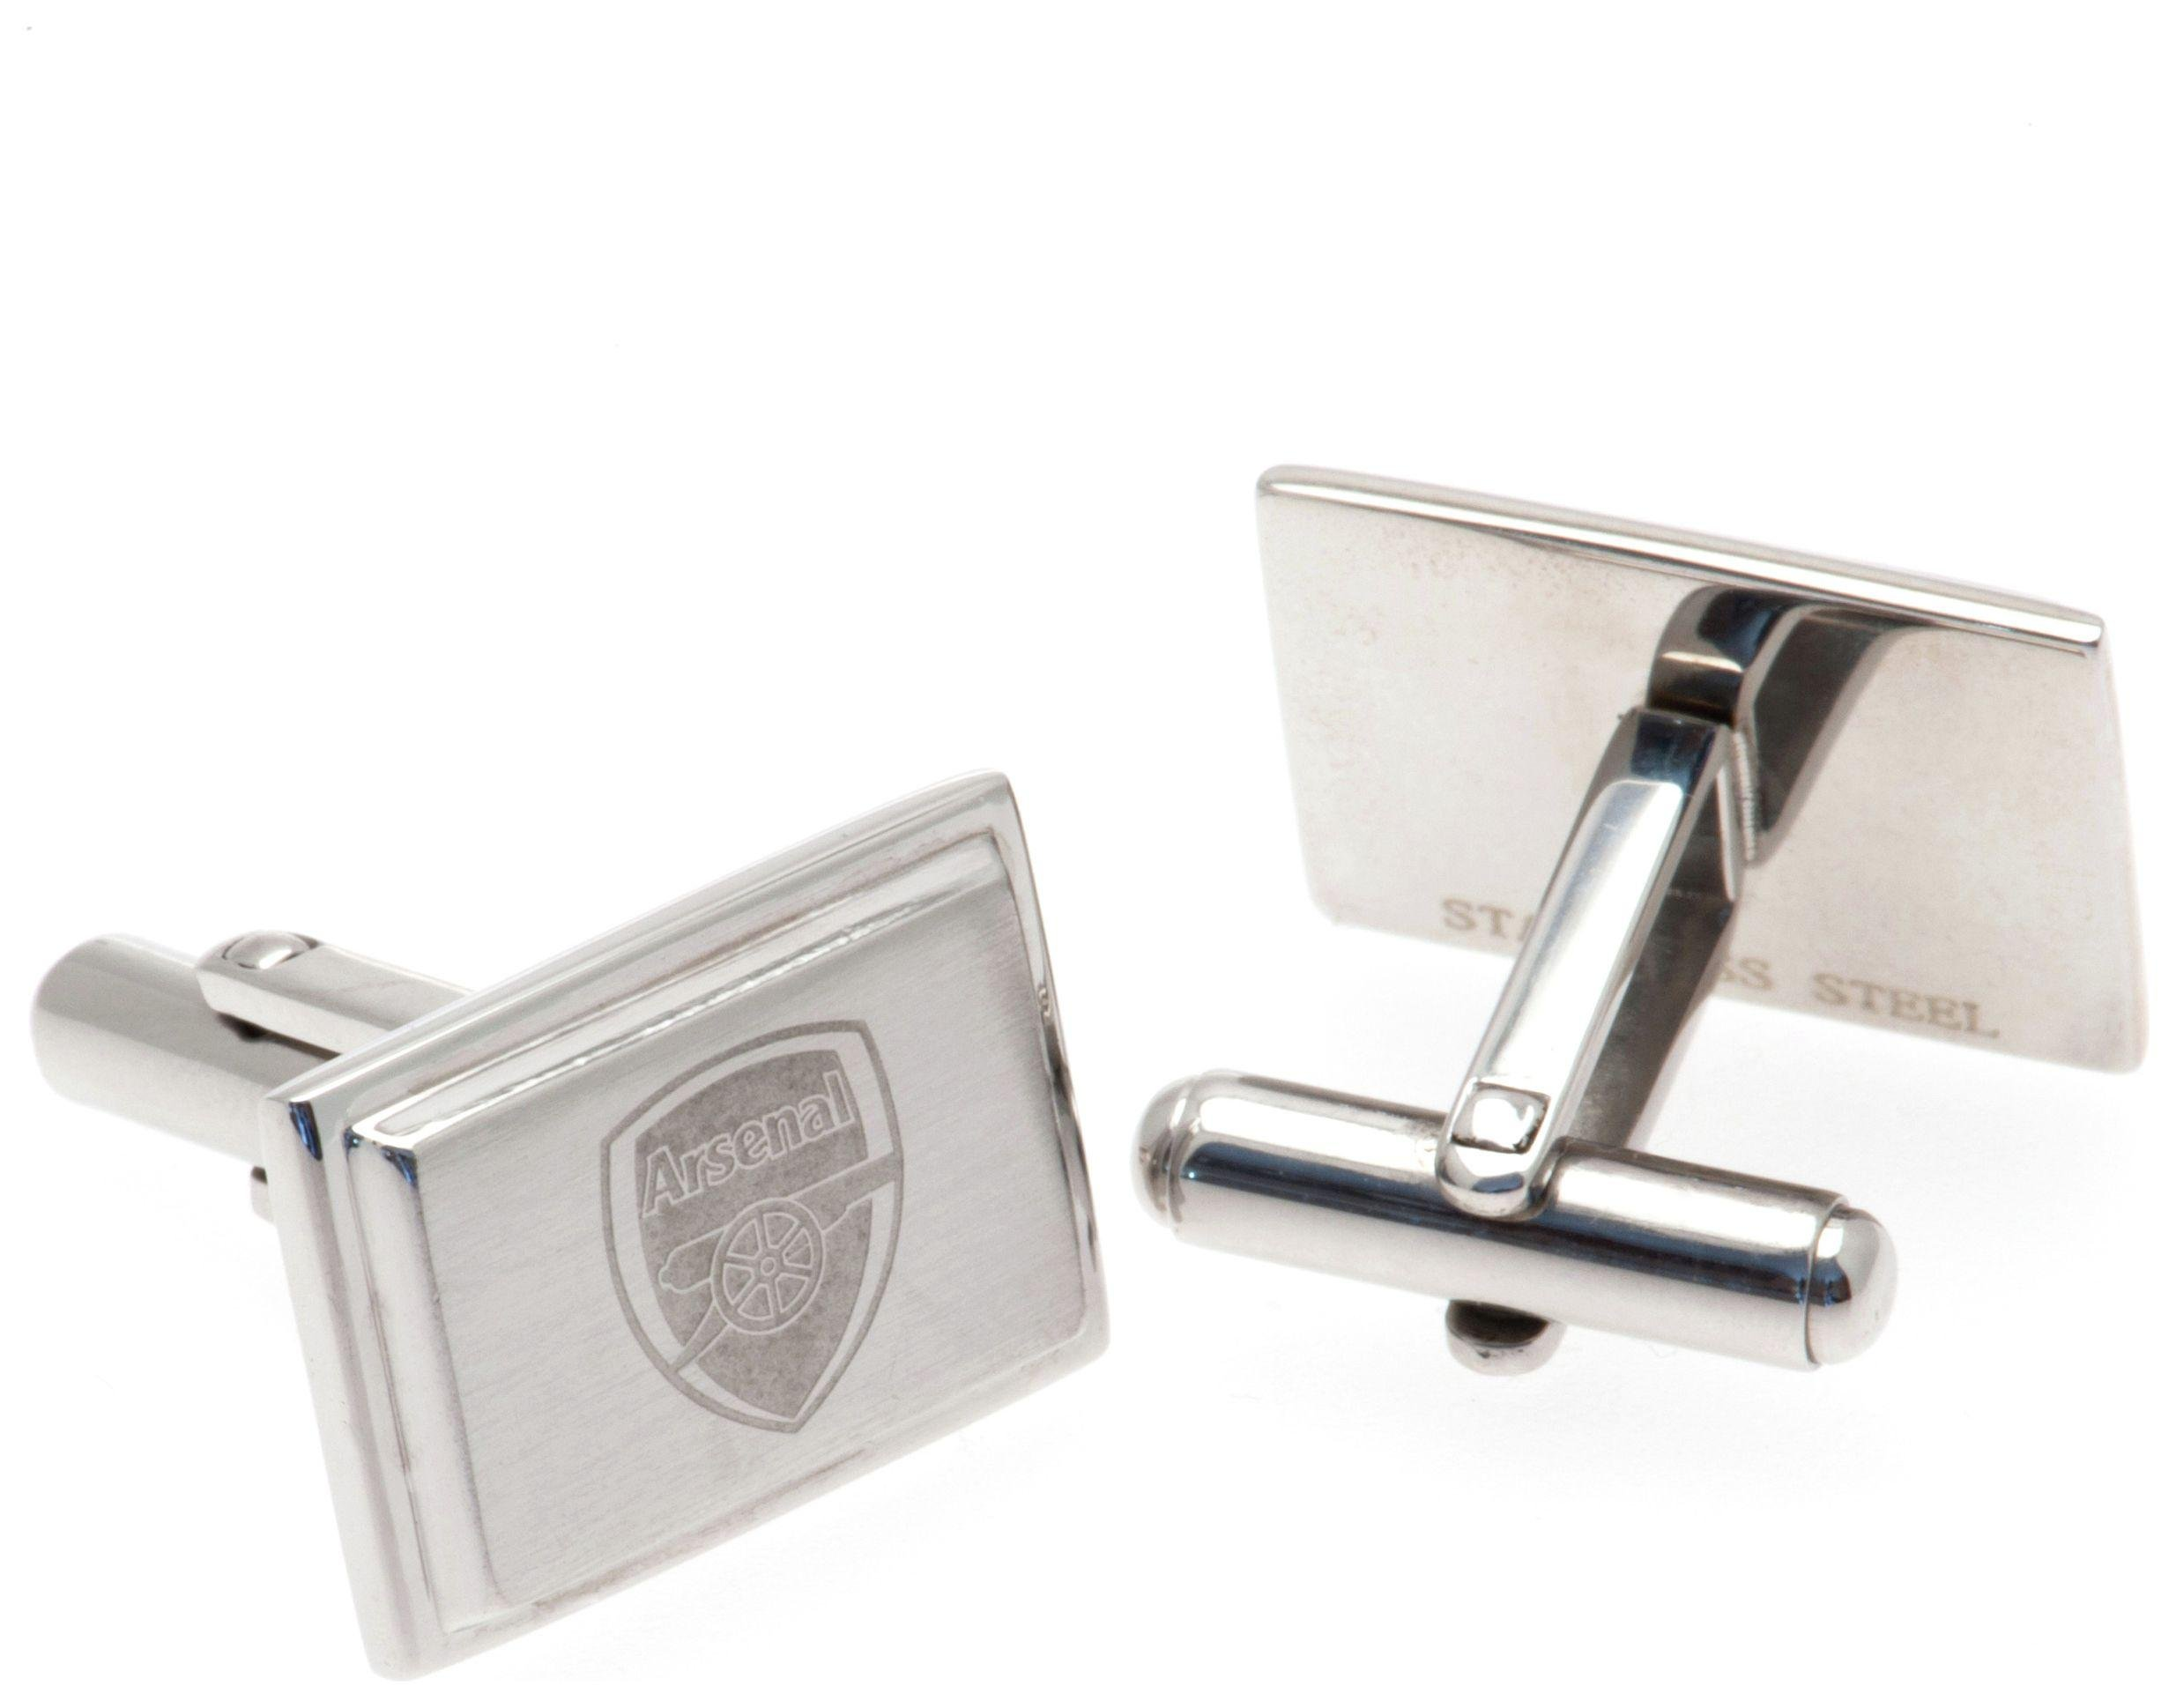 Image of Stainless Steel Arsenal Crest Cufflinks.